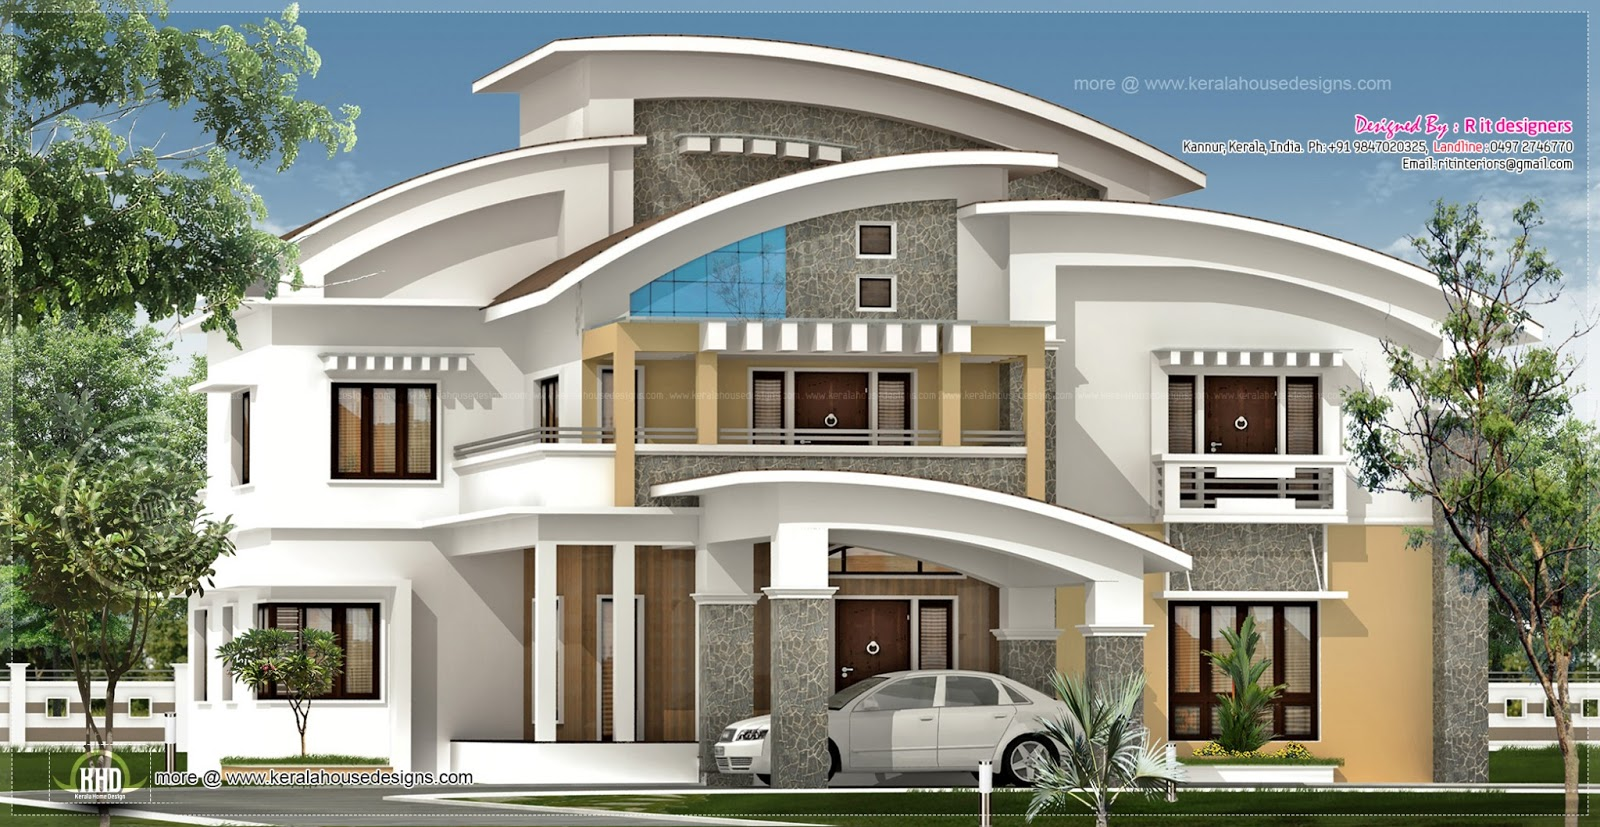 Luxury duplex plans with interior photos joy studio for Best villa design